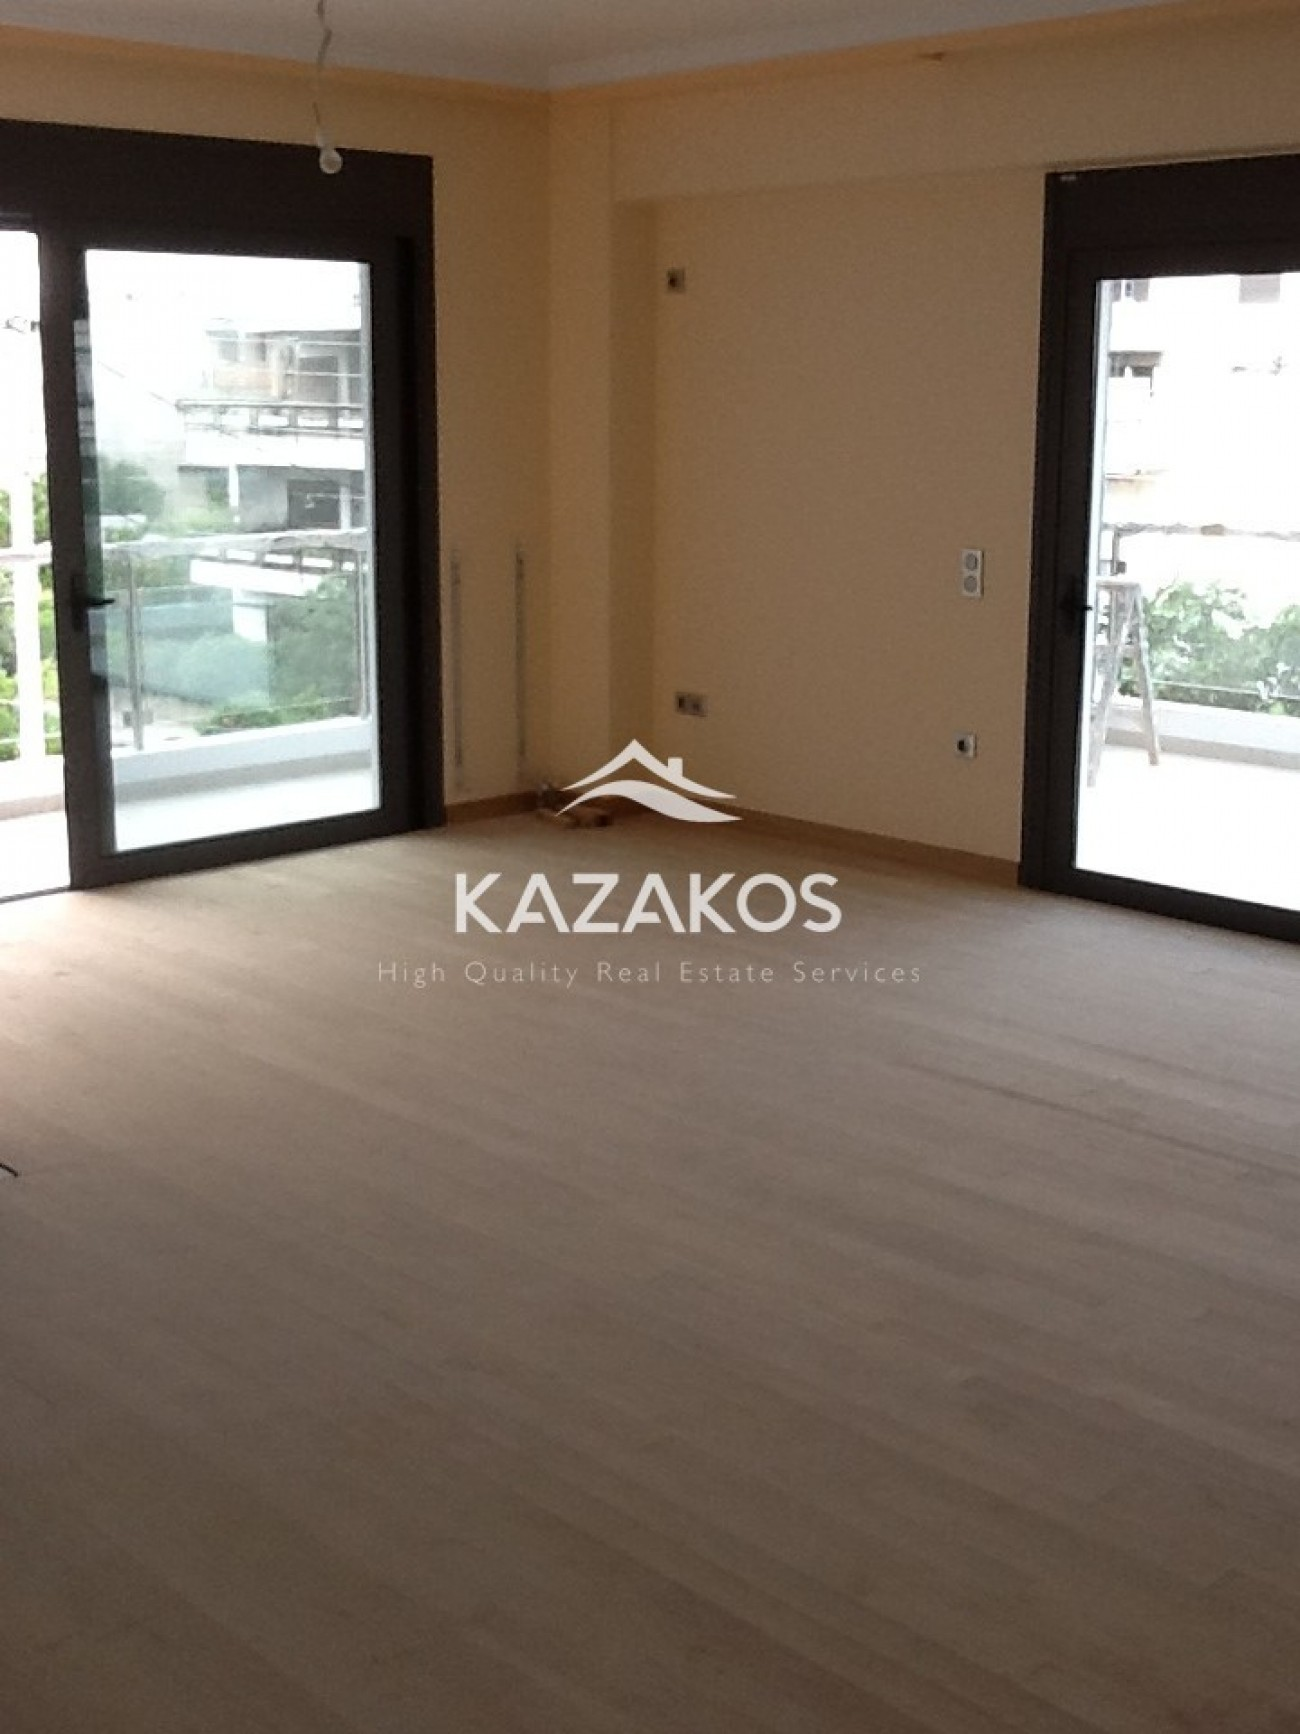 Apartment for Sale in Xolargos, North & East Region of Athens, Greece